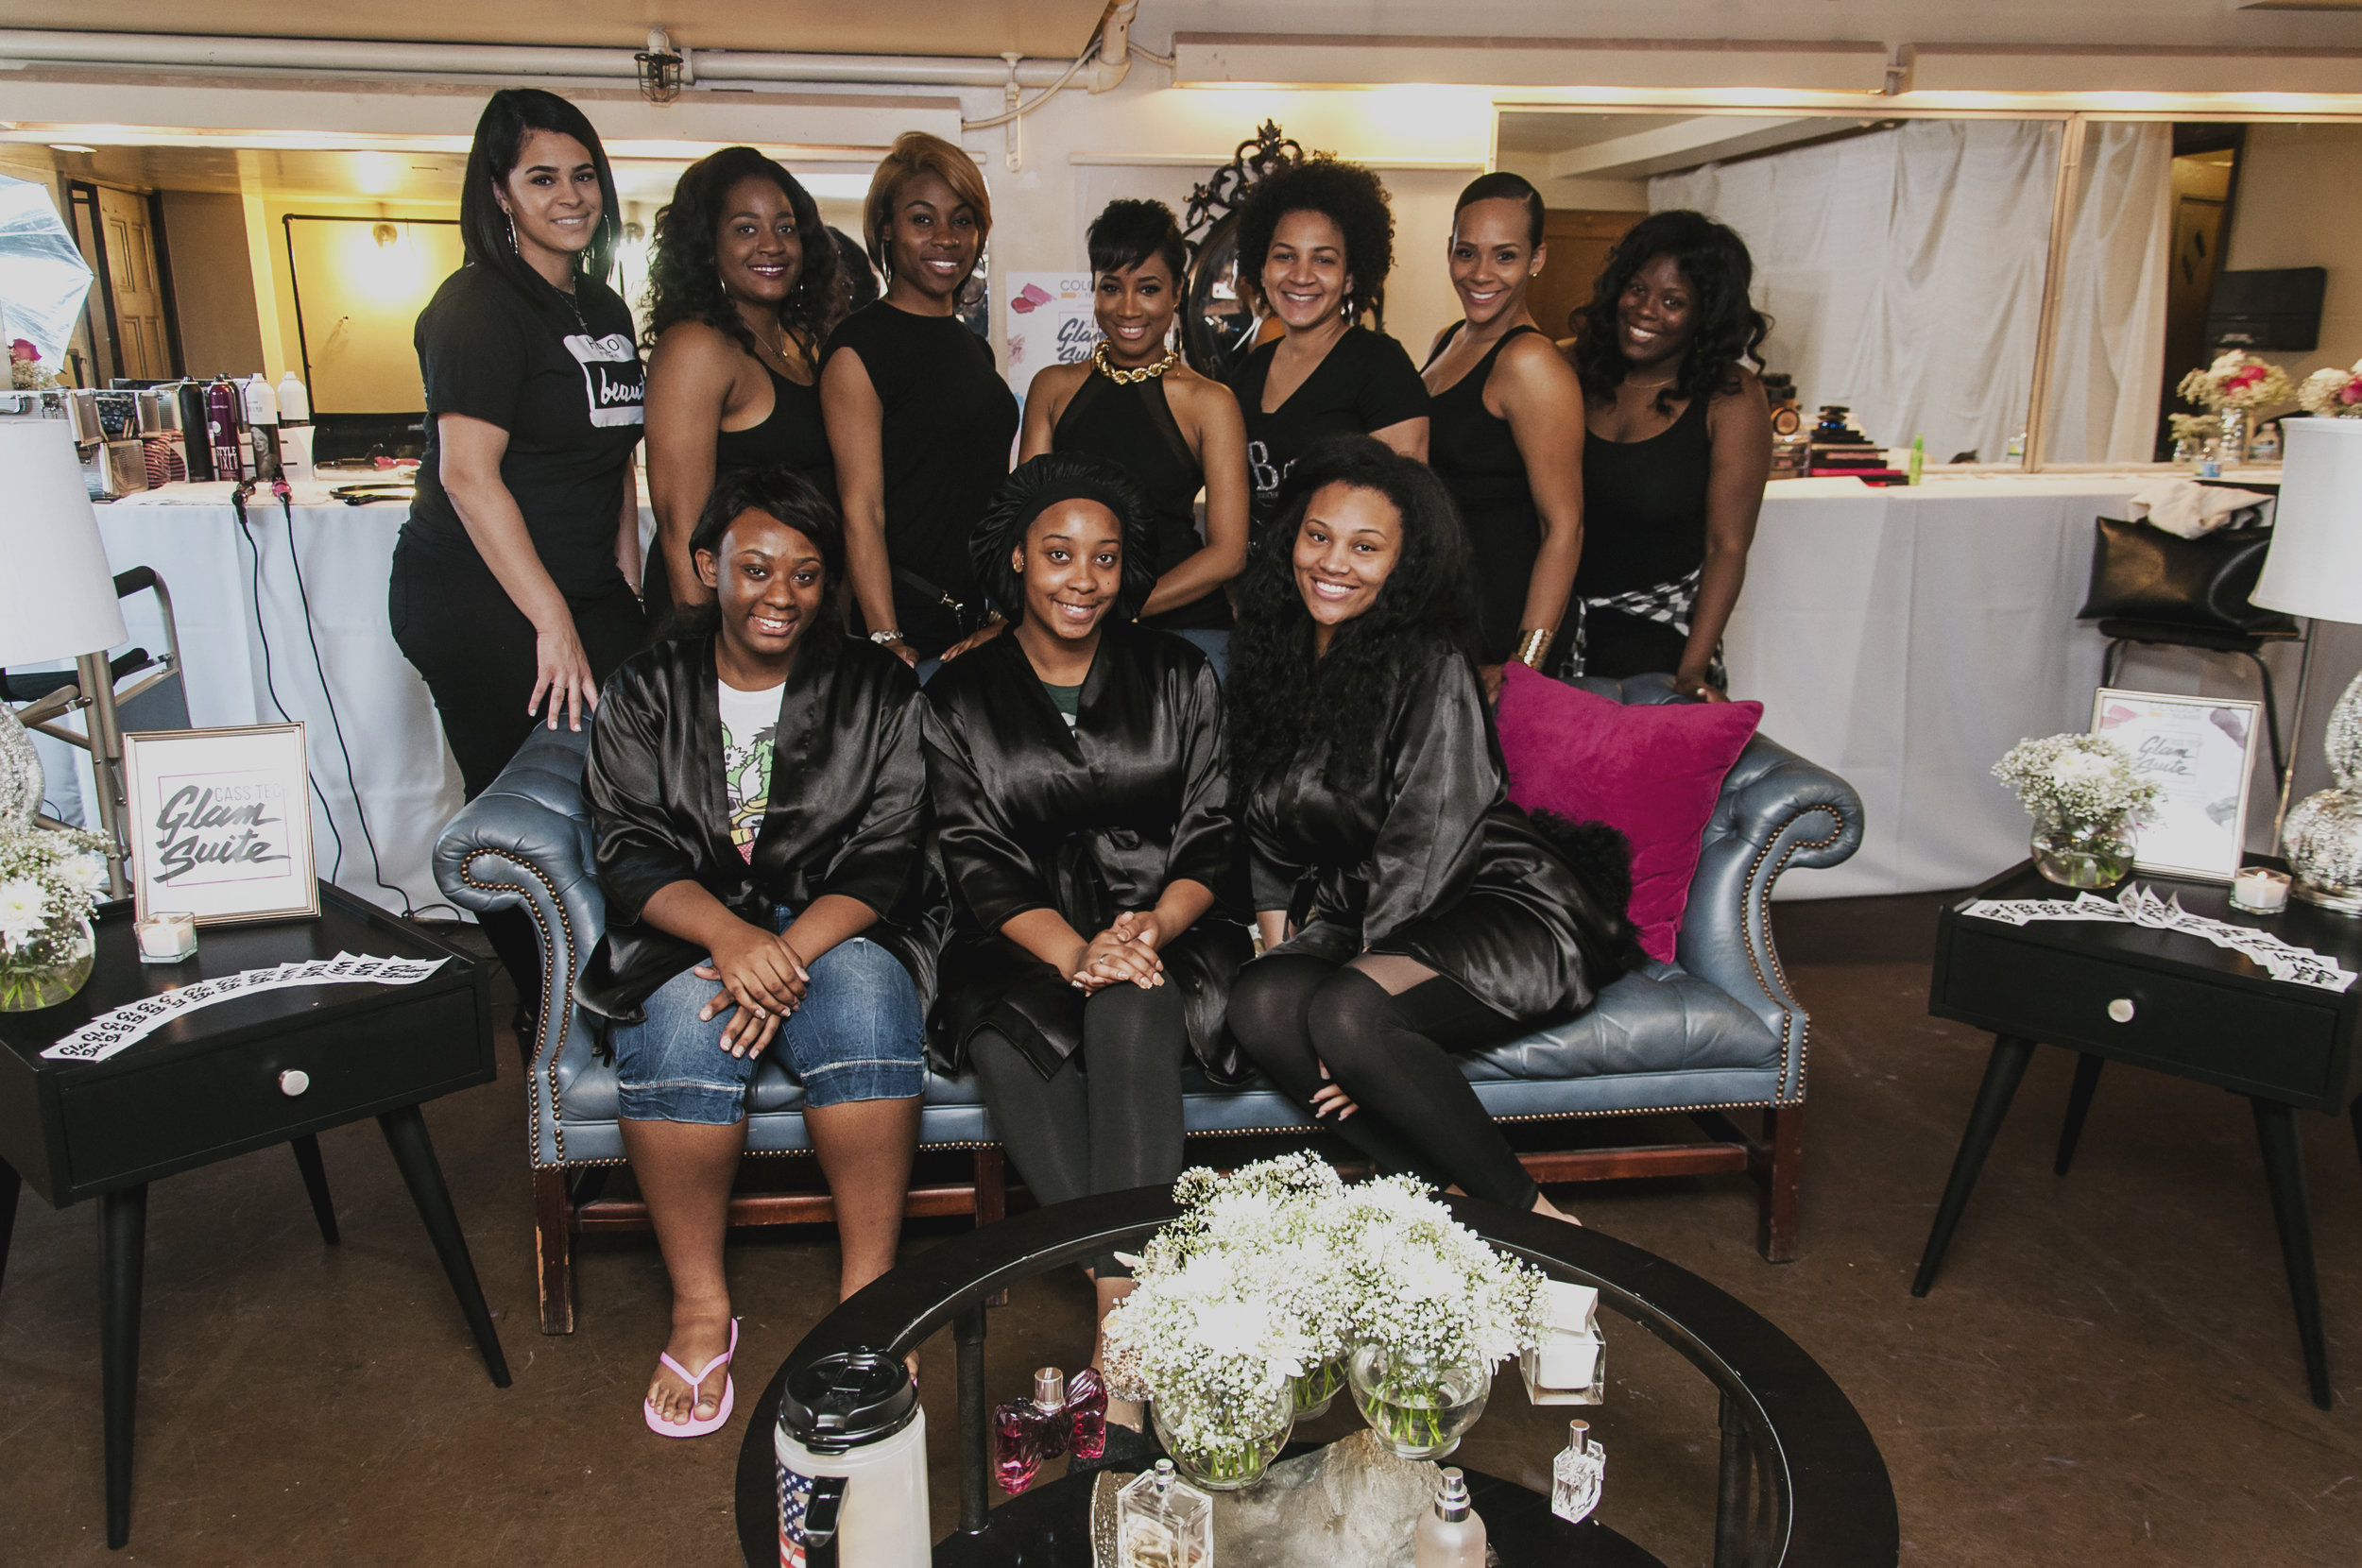 Class of 2016 - With a mission to provide impeccable beauty and fashion servicing for Cass Tech students from Cass Tech alumni, the first annual Cass Tech Glam Suite was a complete success!